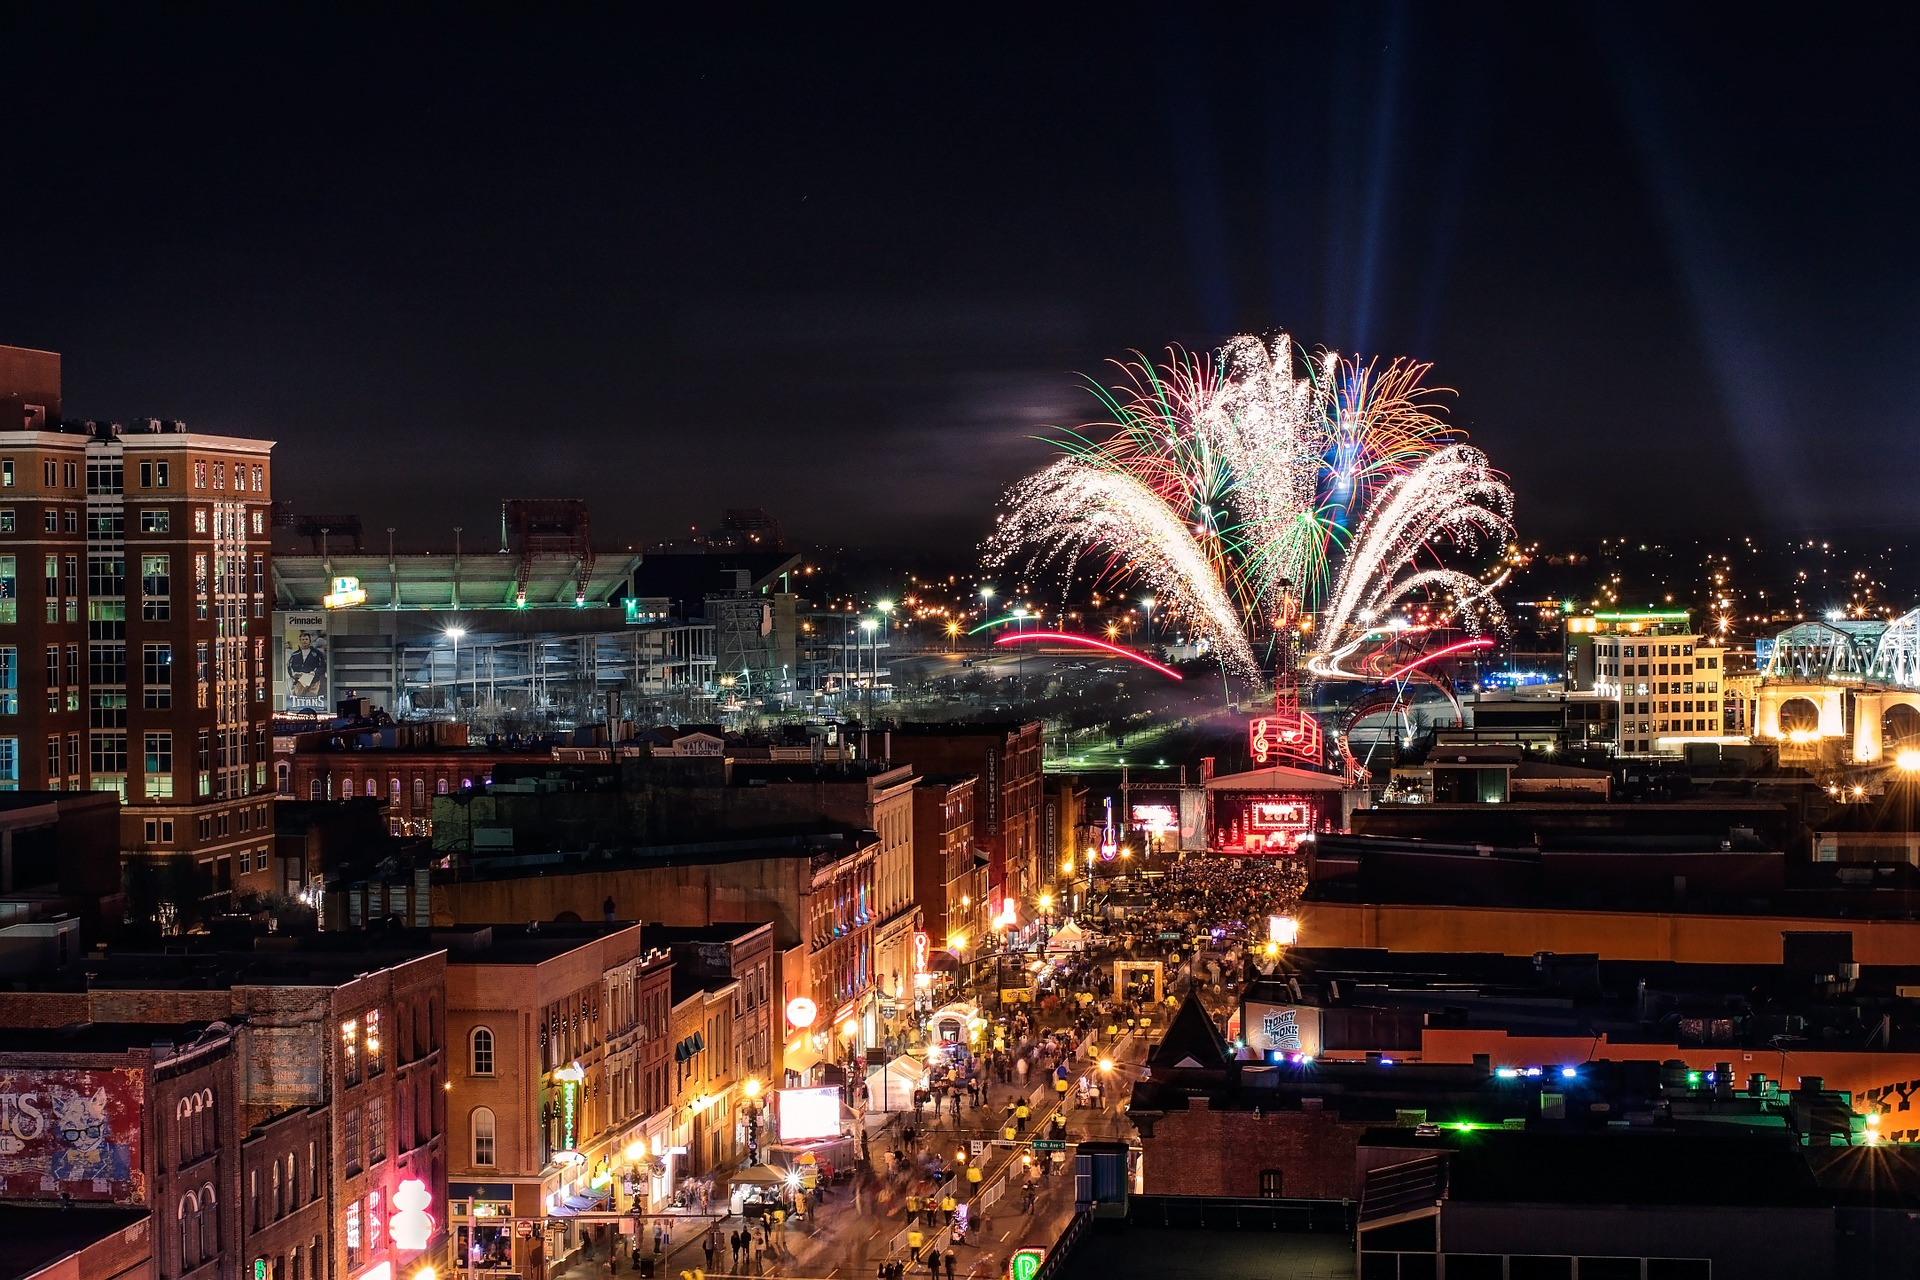 Nashville Nightline with Fireworks